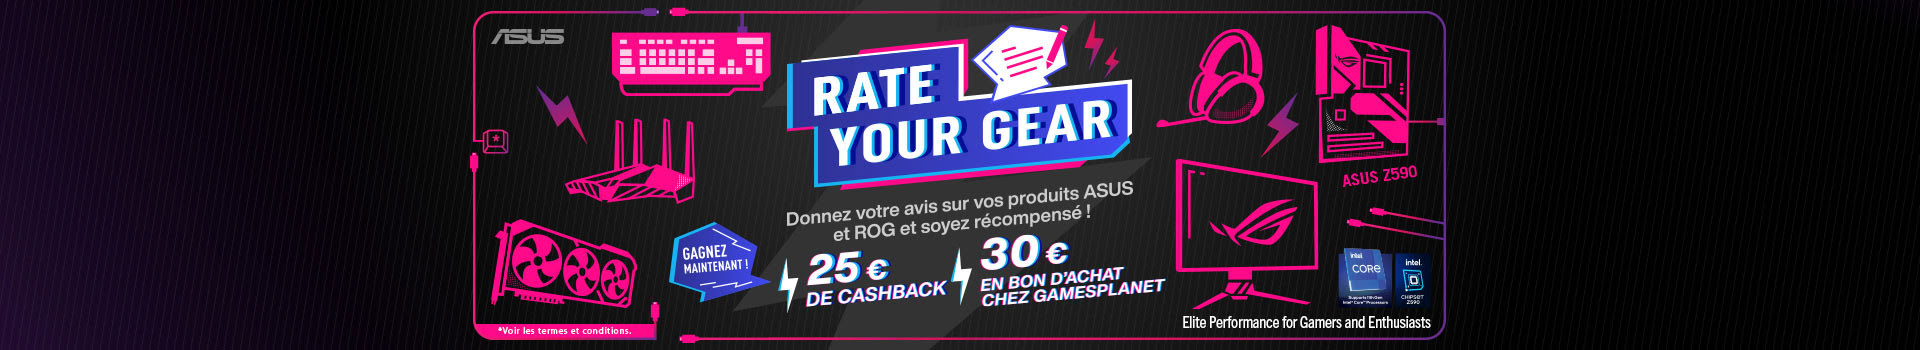 Asus rate your Gear